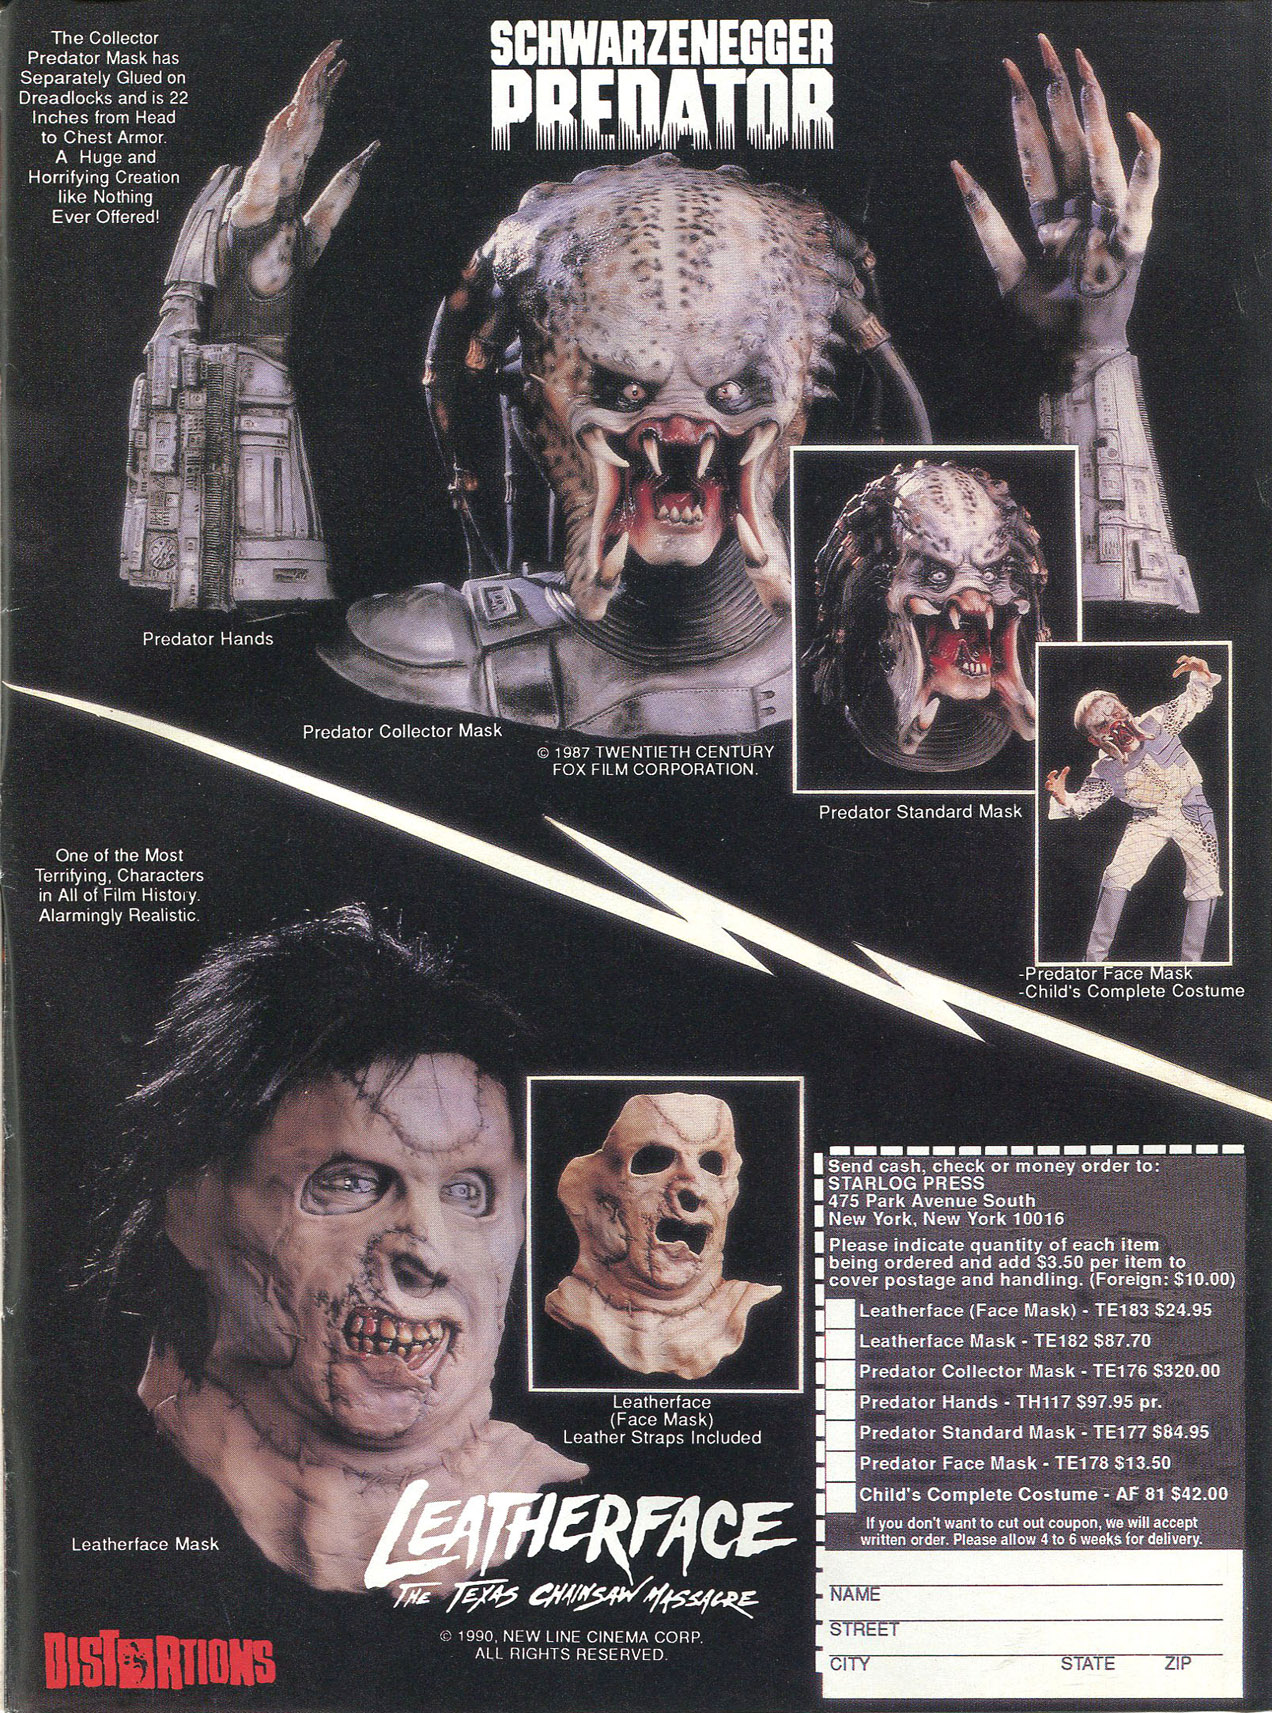 Halloween Masks | Branded in the 80s | Page 2